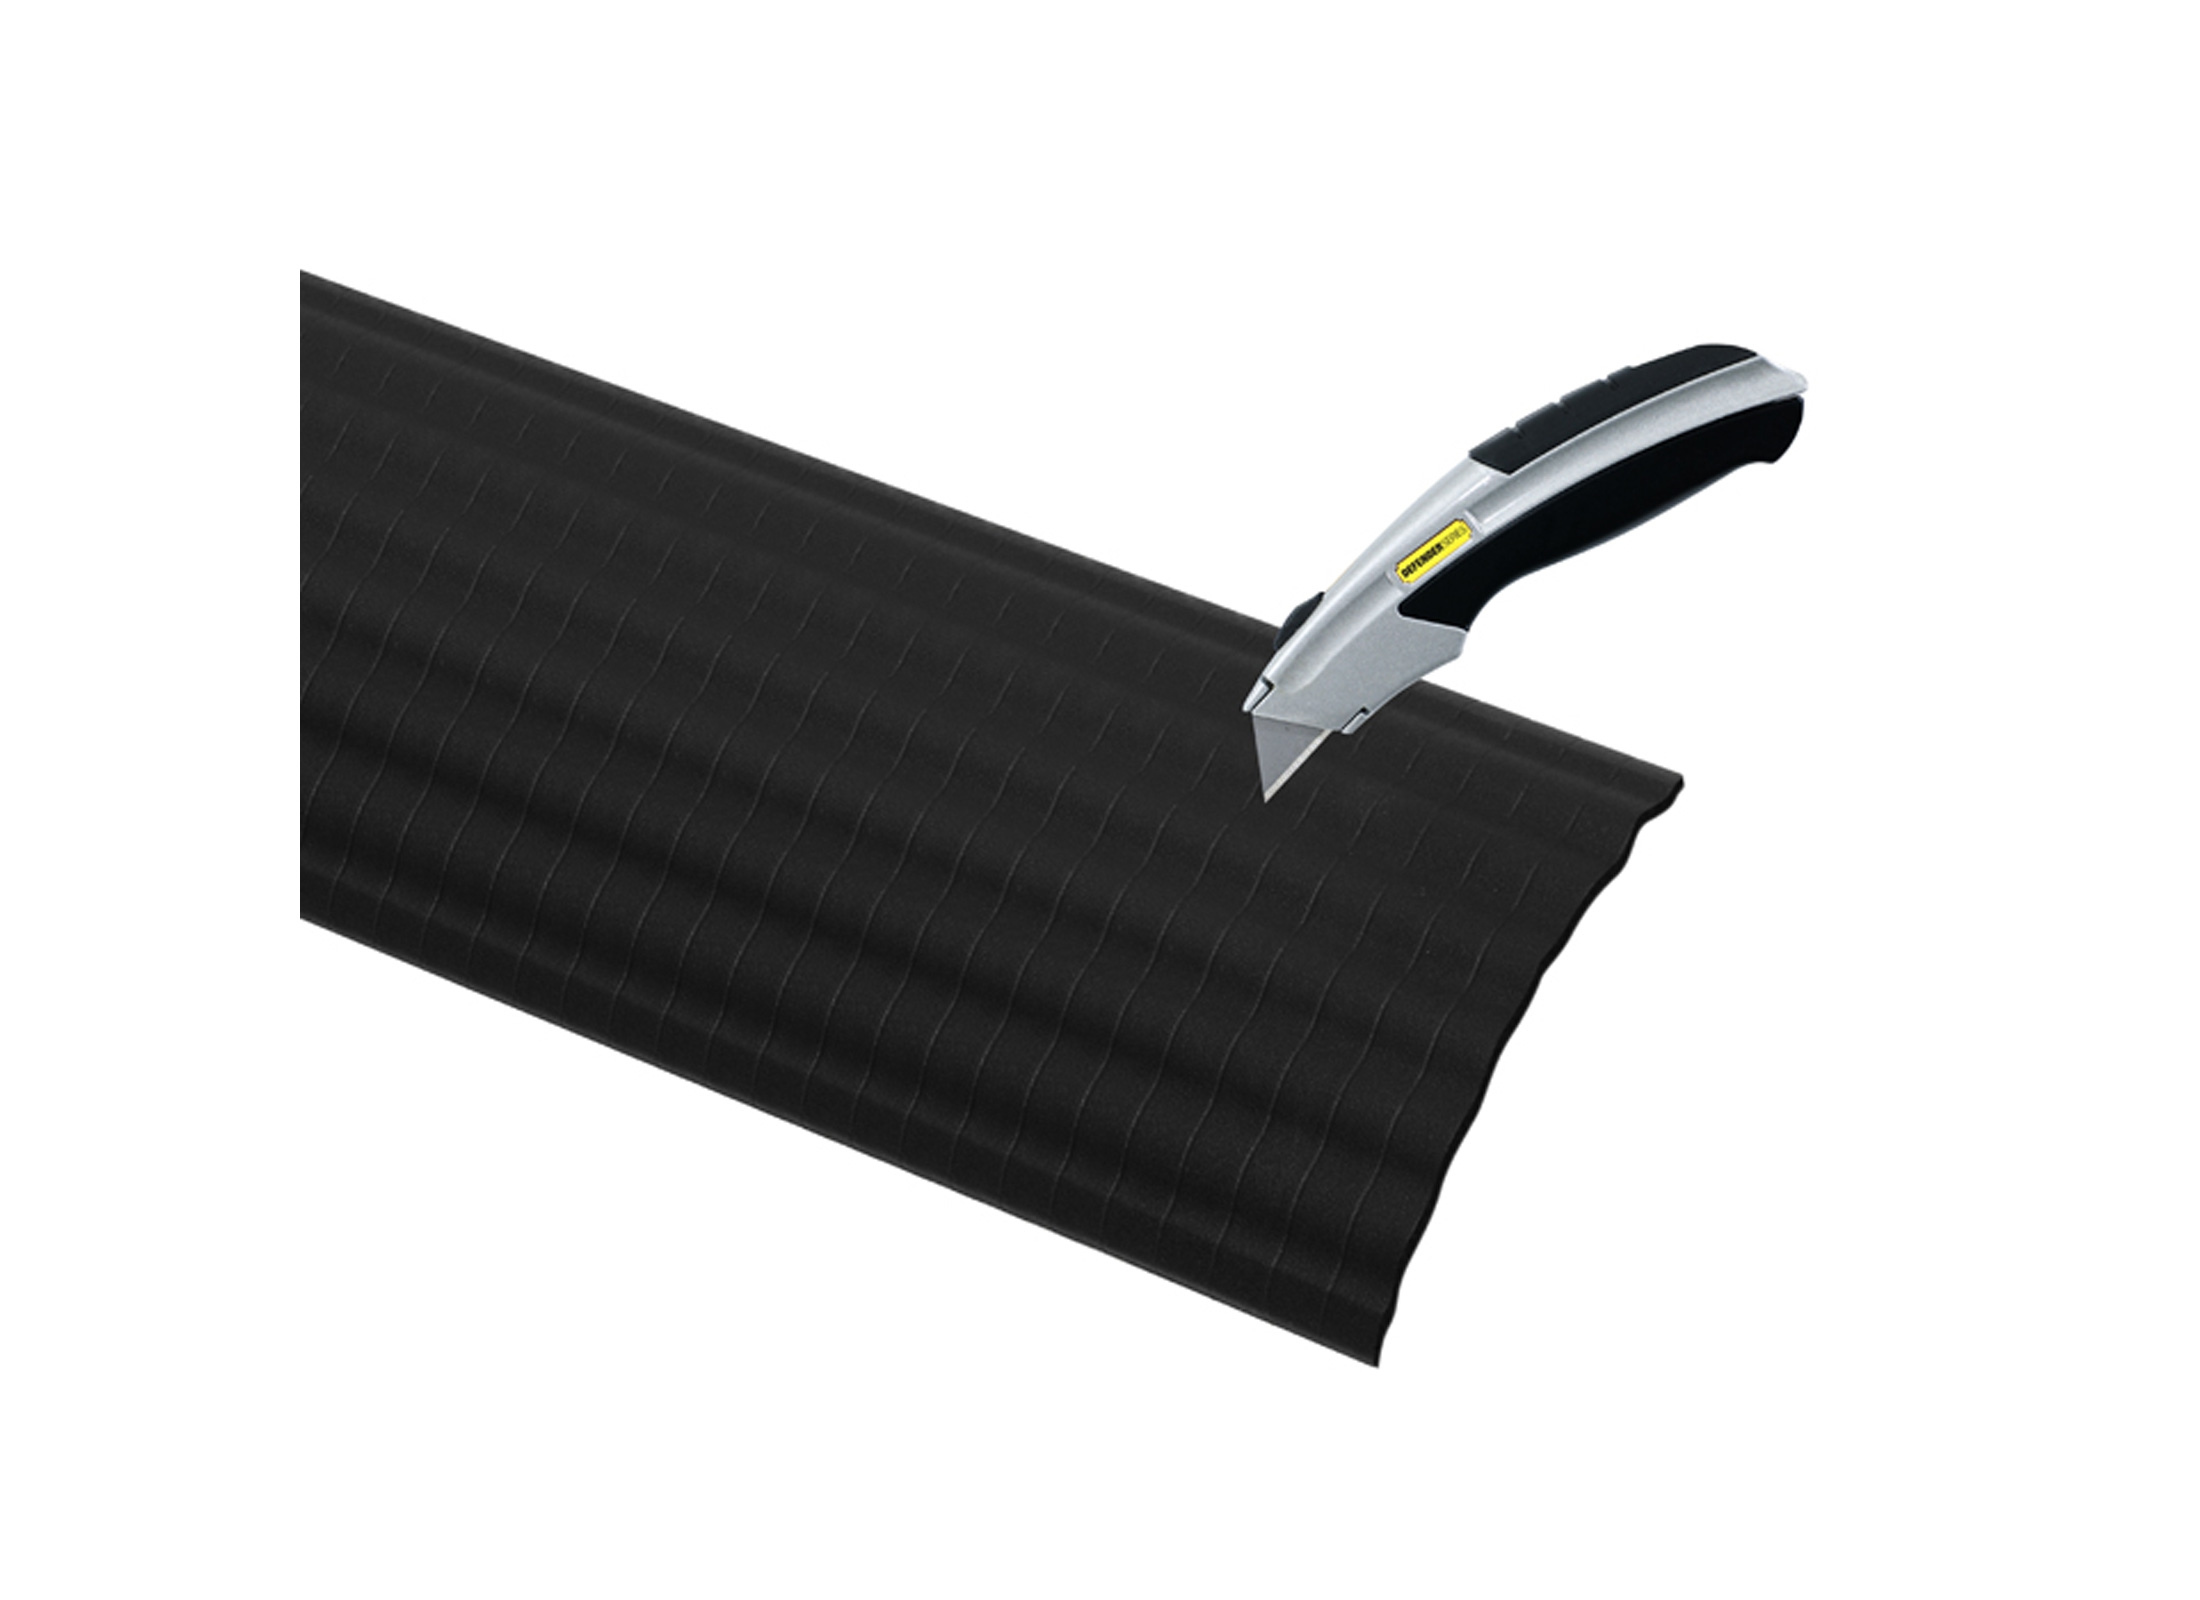 office cable protector. Defender Office Cable Protector, Black - 5 Protector